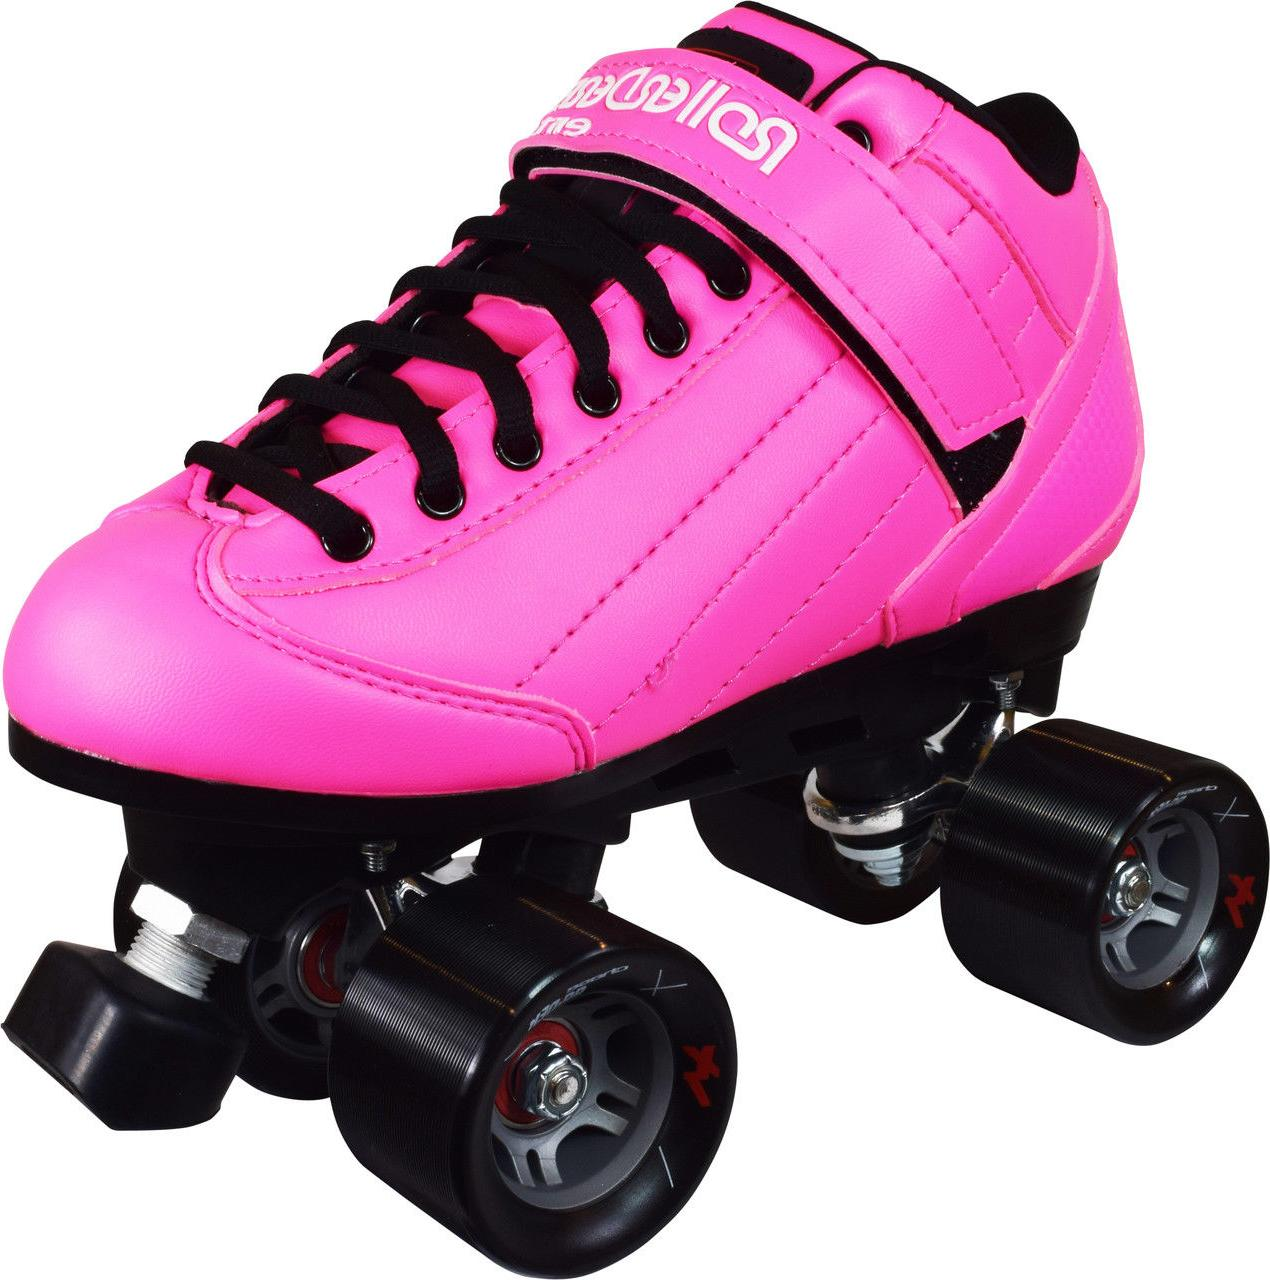 new stomp 5 elite pink men s